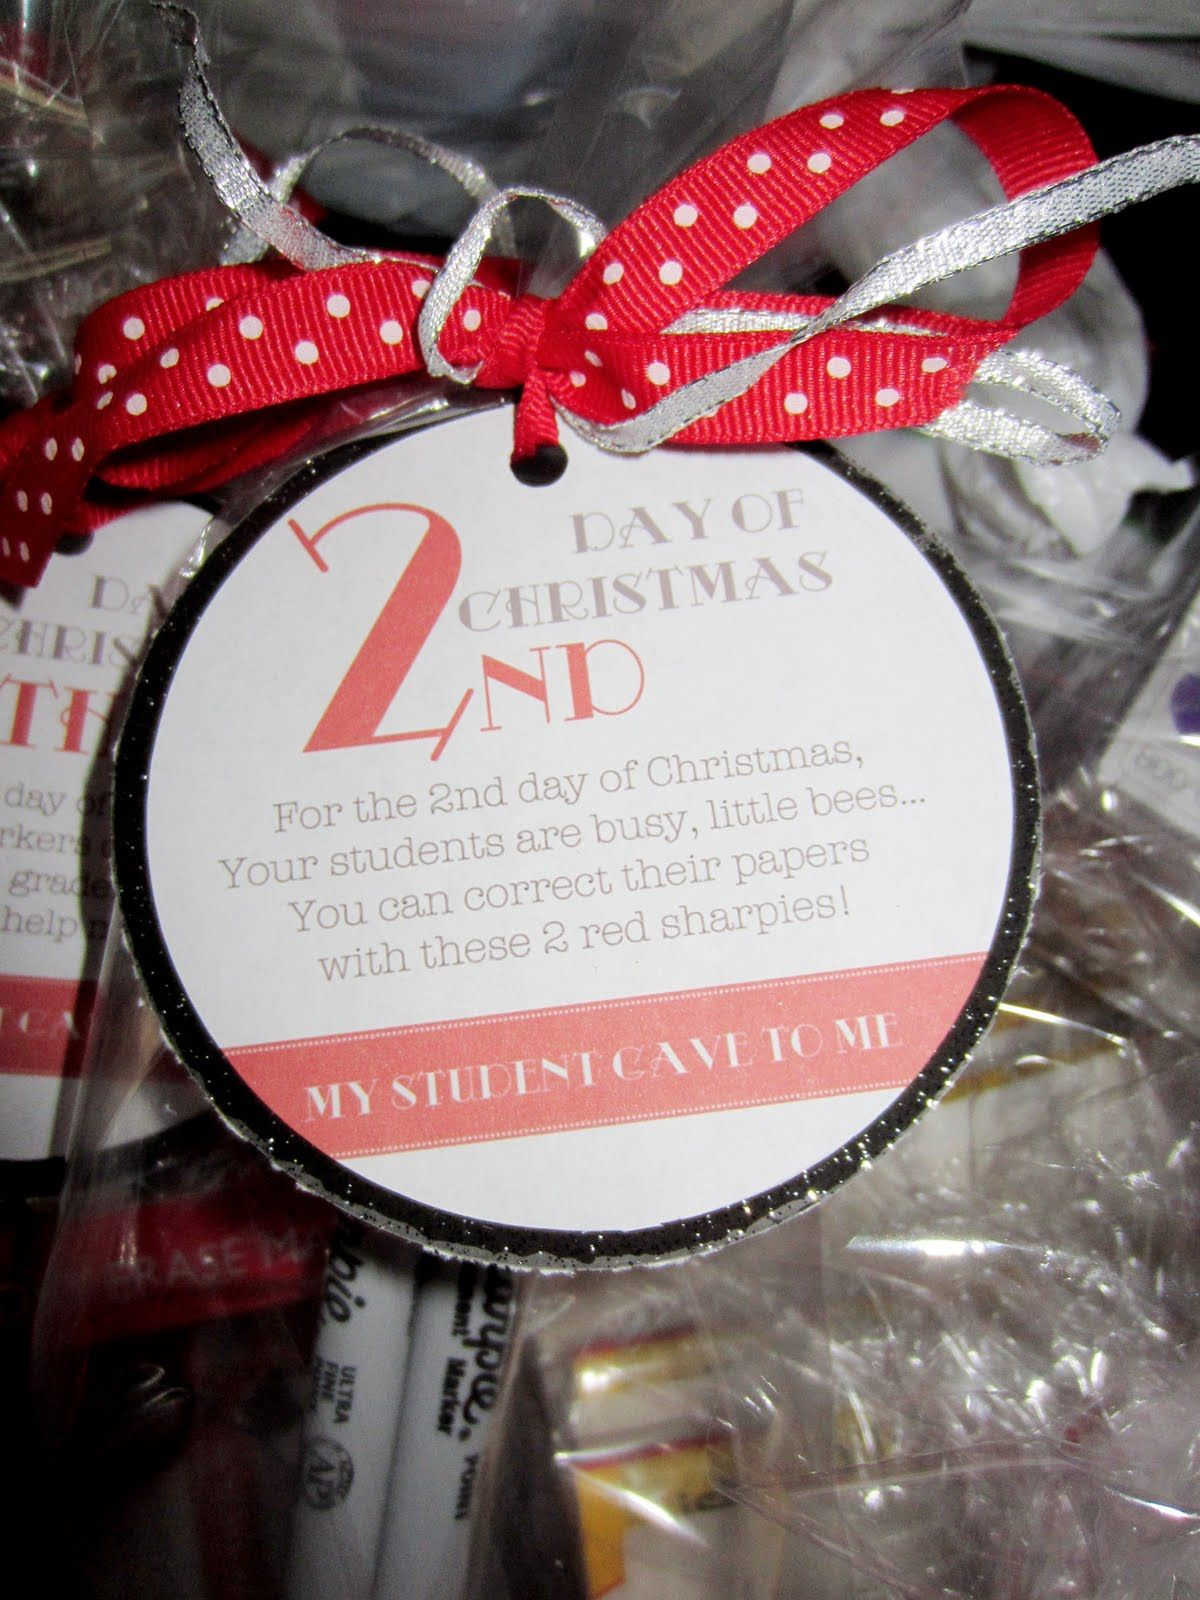 Pin by B on Christmas | Pinterest | Teacher christmas gifts ...